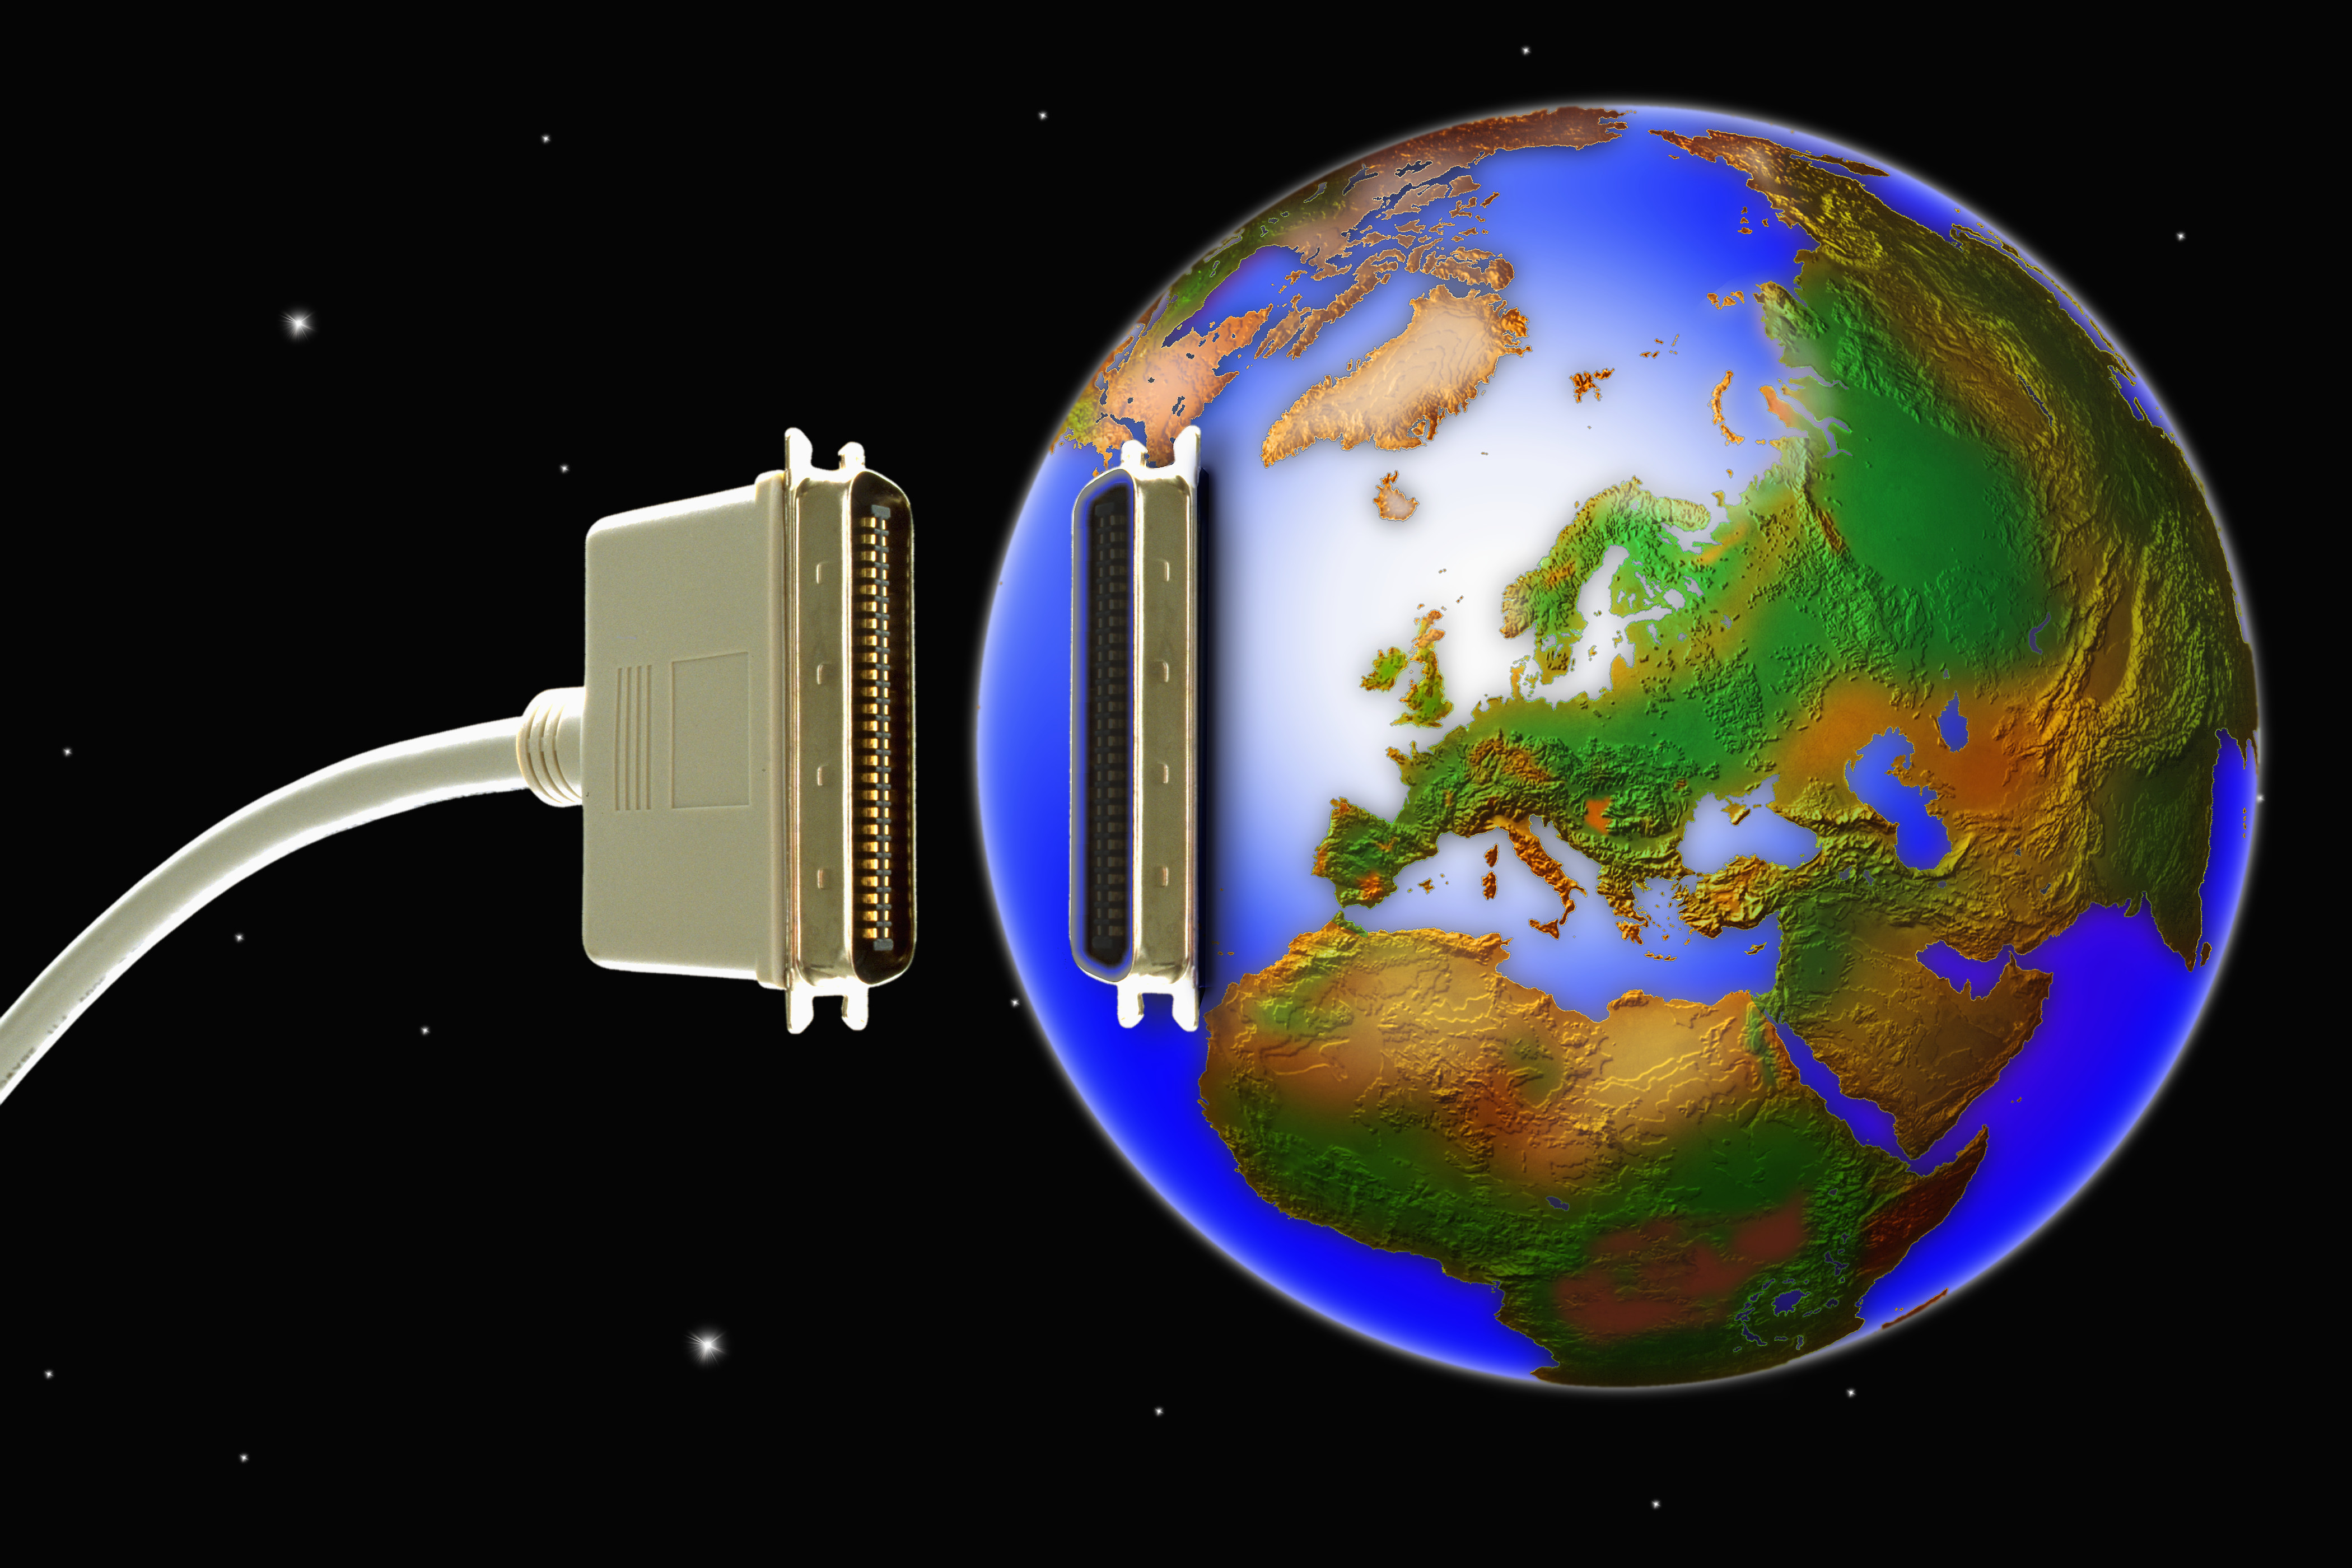 Networking cable connecting the world